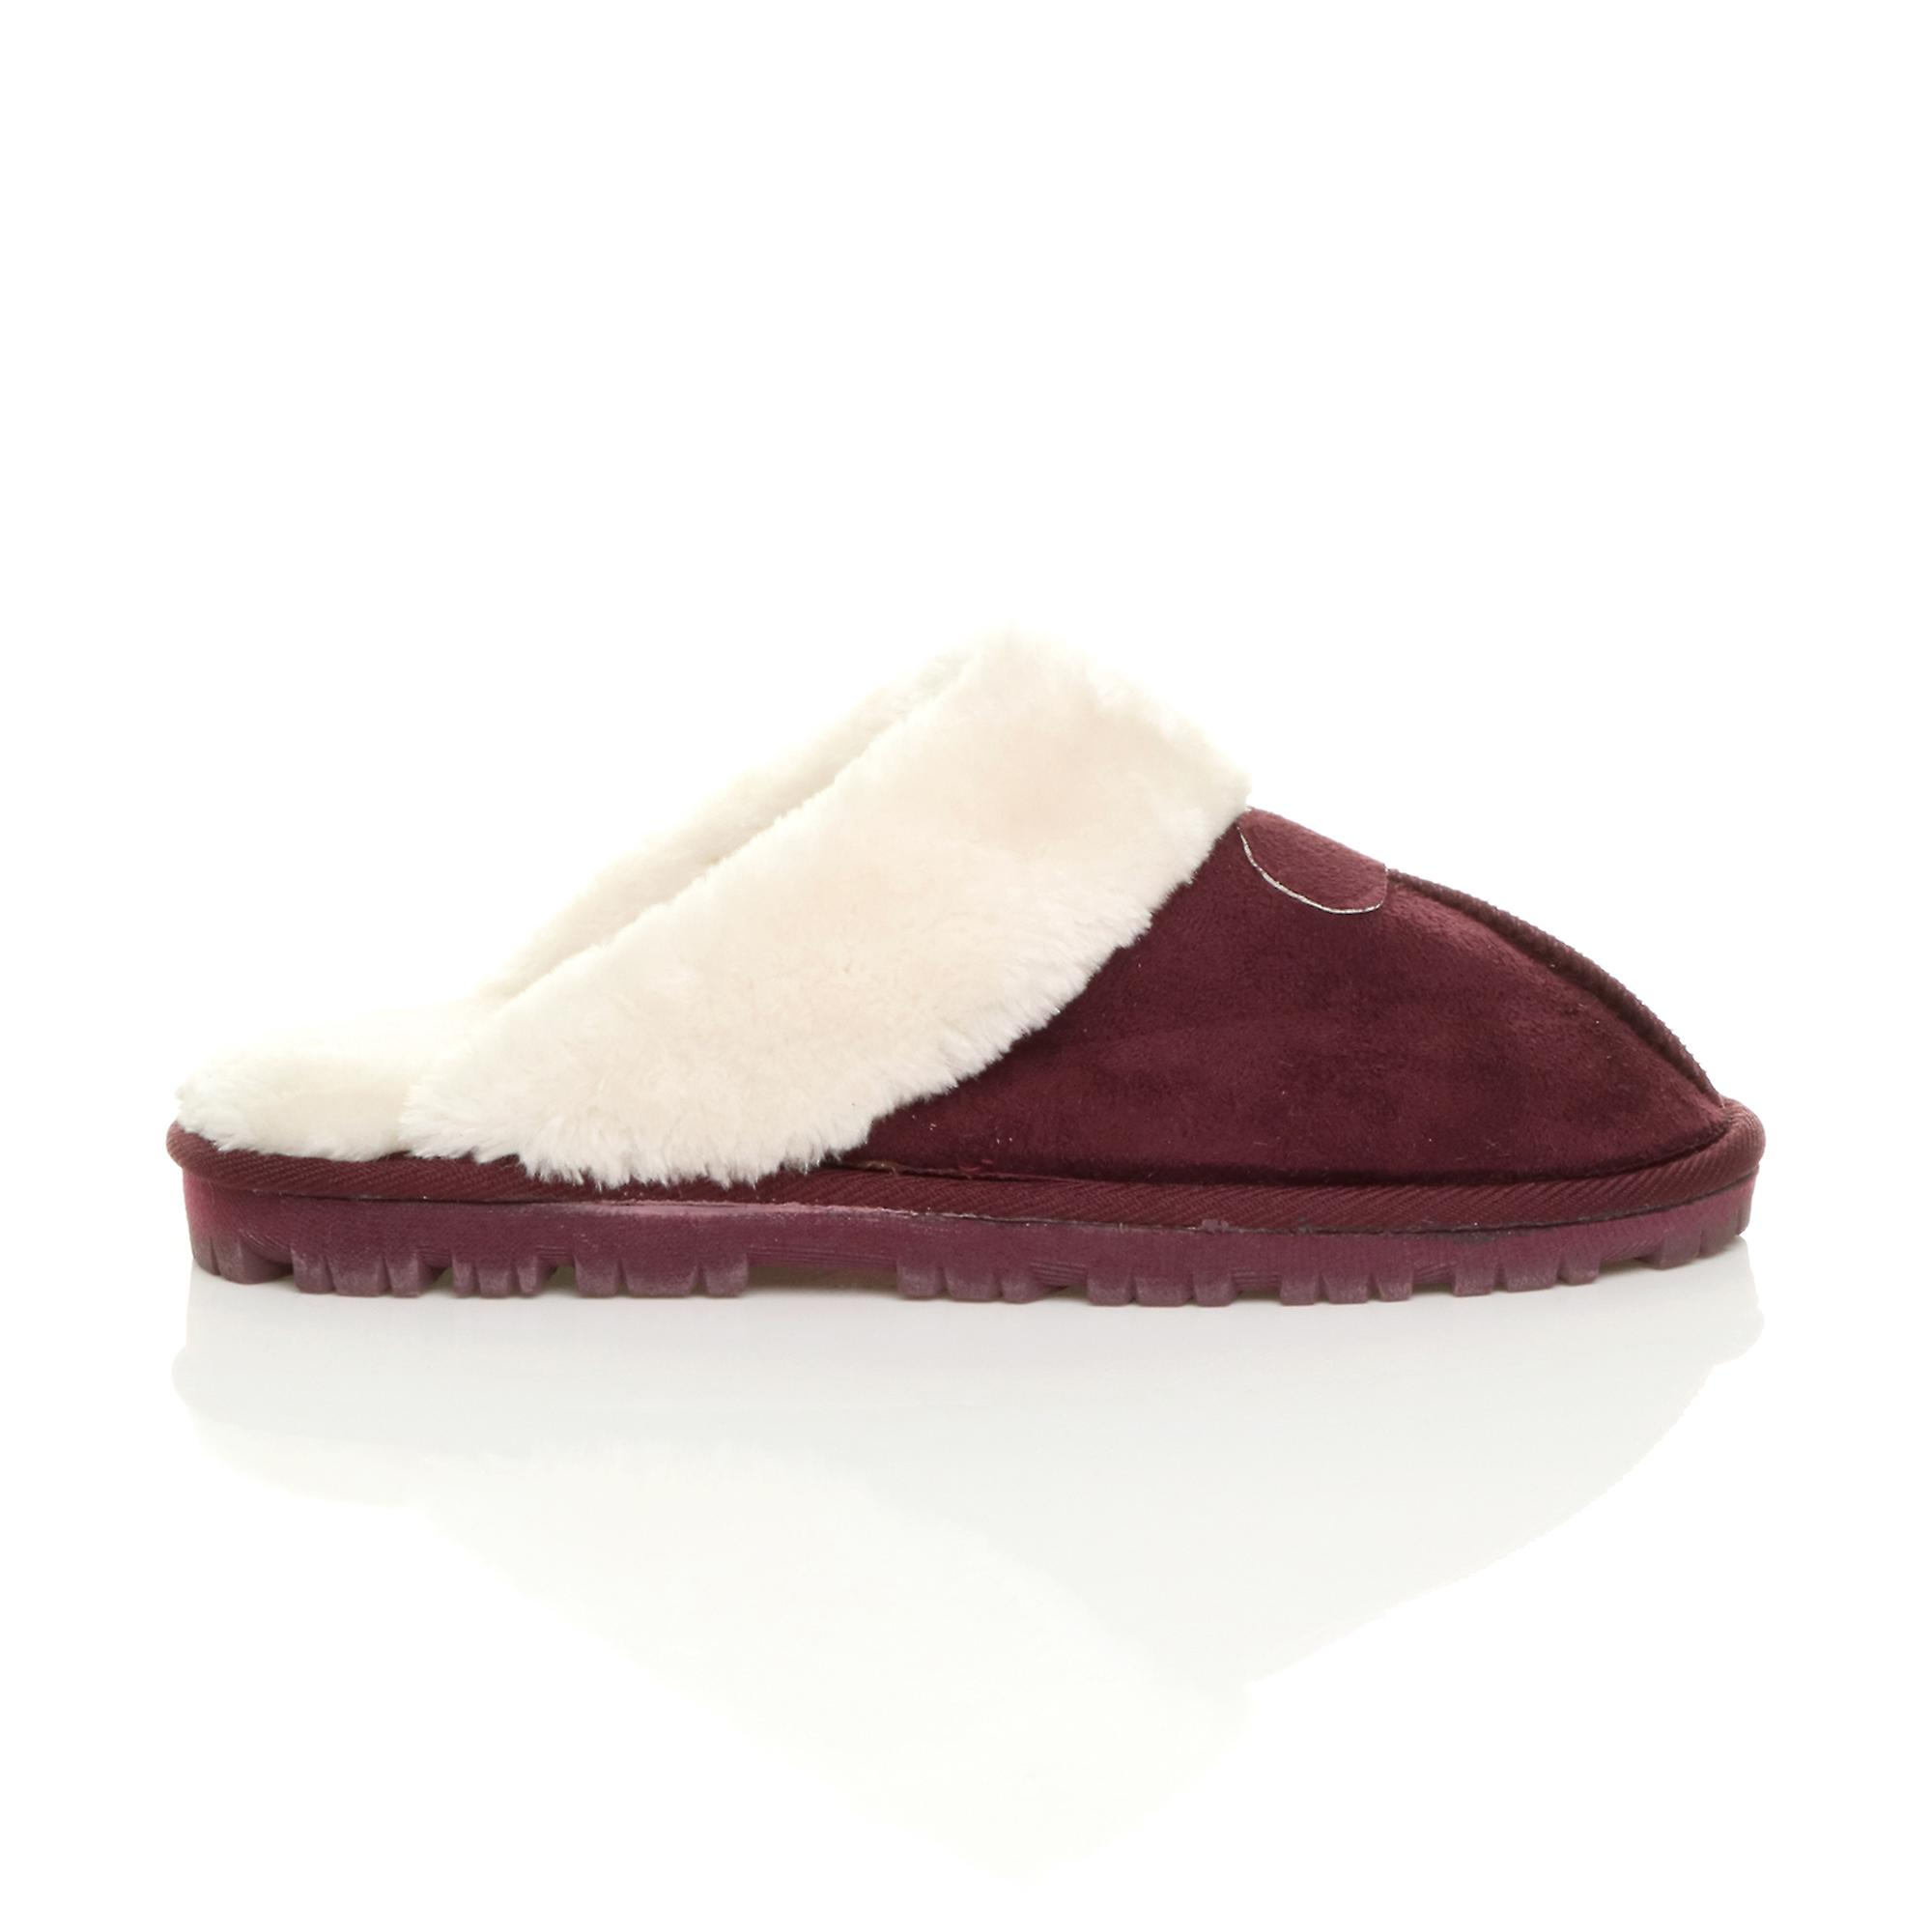 Ajvani womens flat winter faux sheepskin fur lined slip on luxury mules slippers shoes